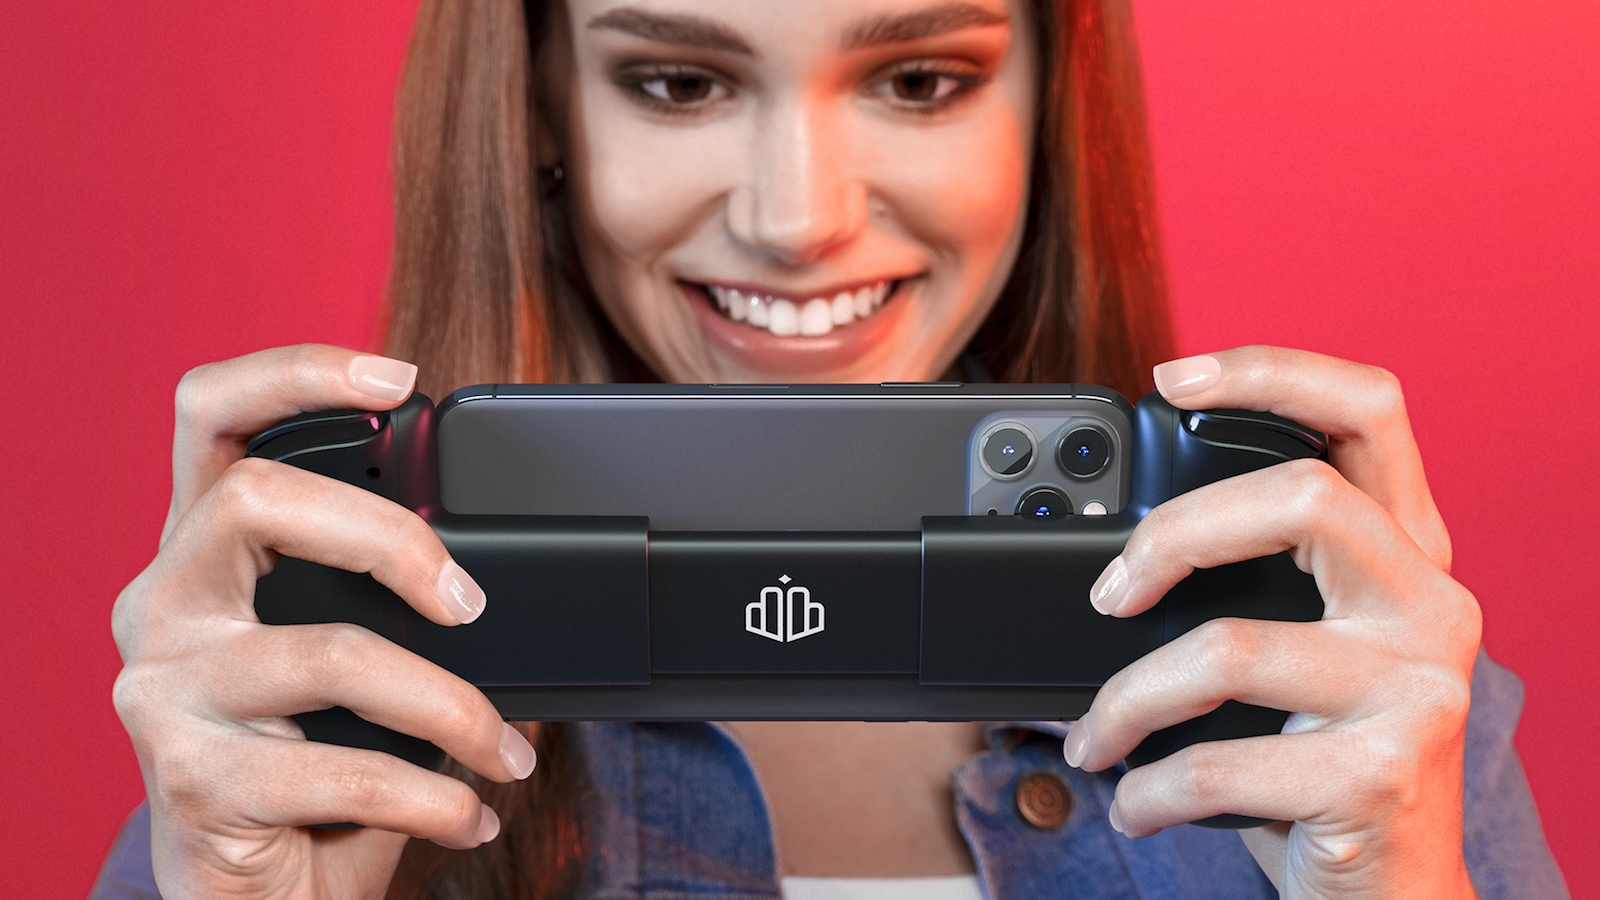 Backbone One iPhone controller turns your phone into a portable gaming device